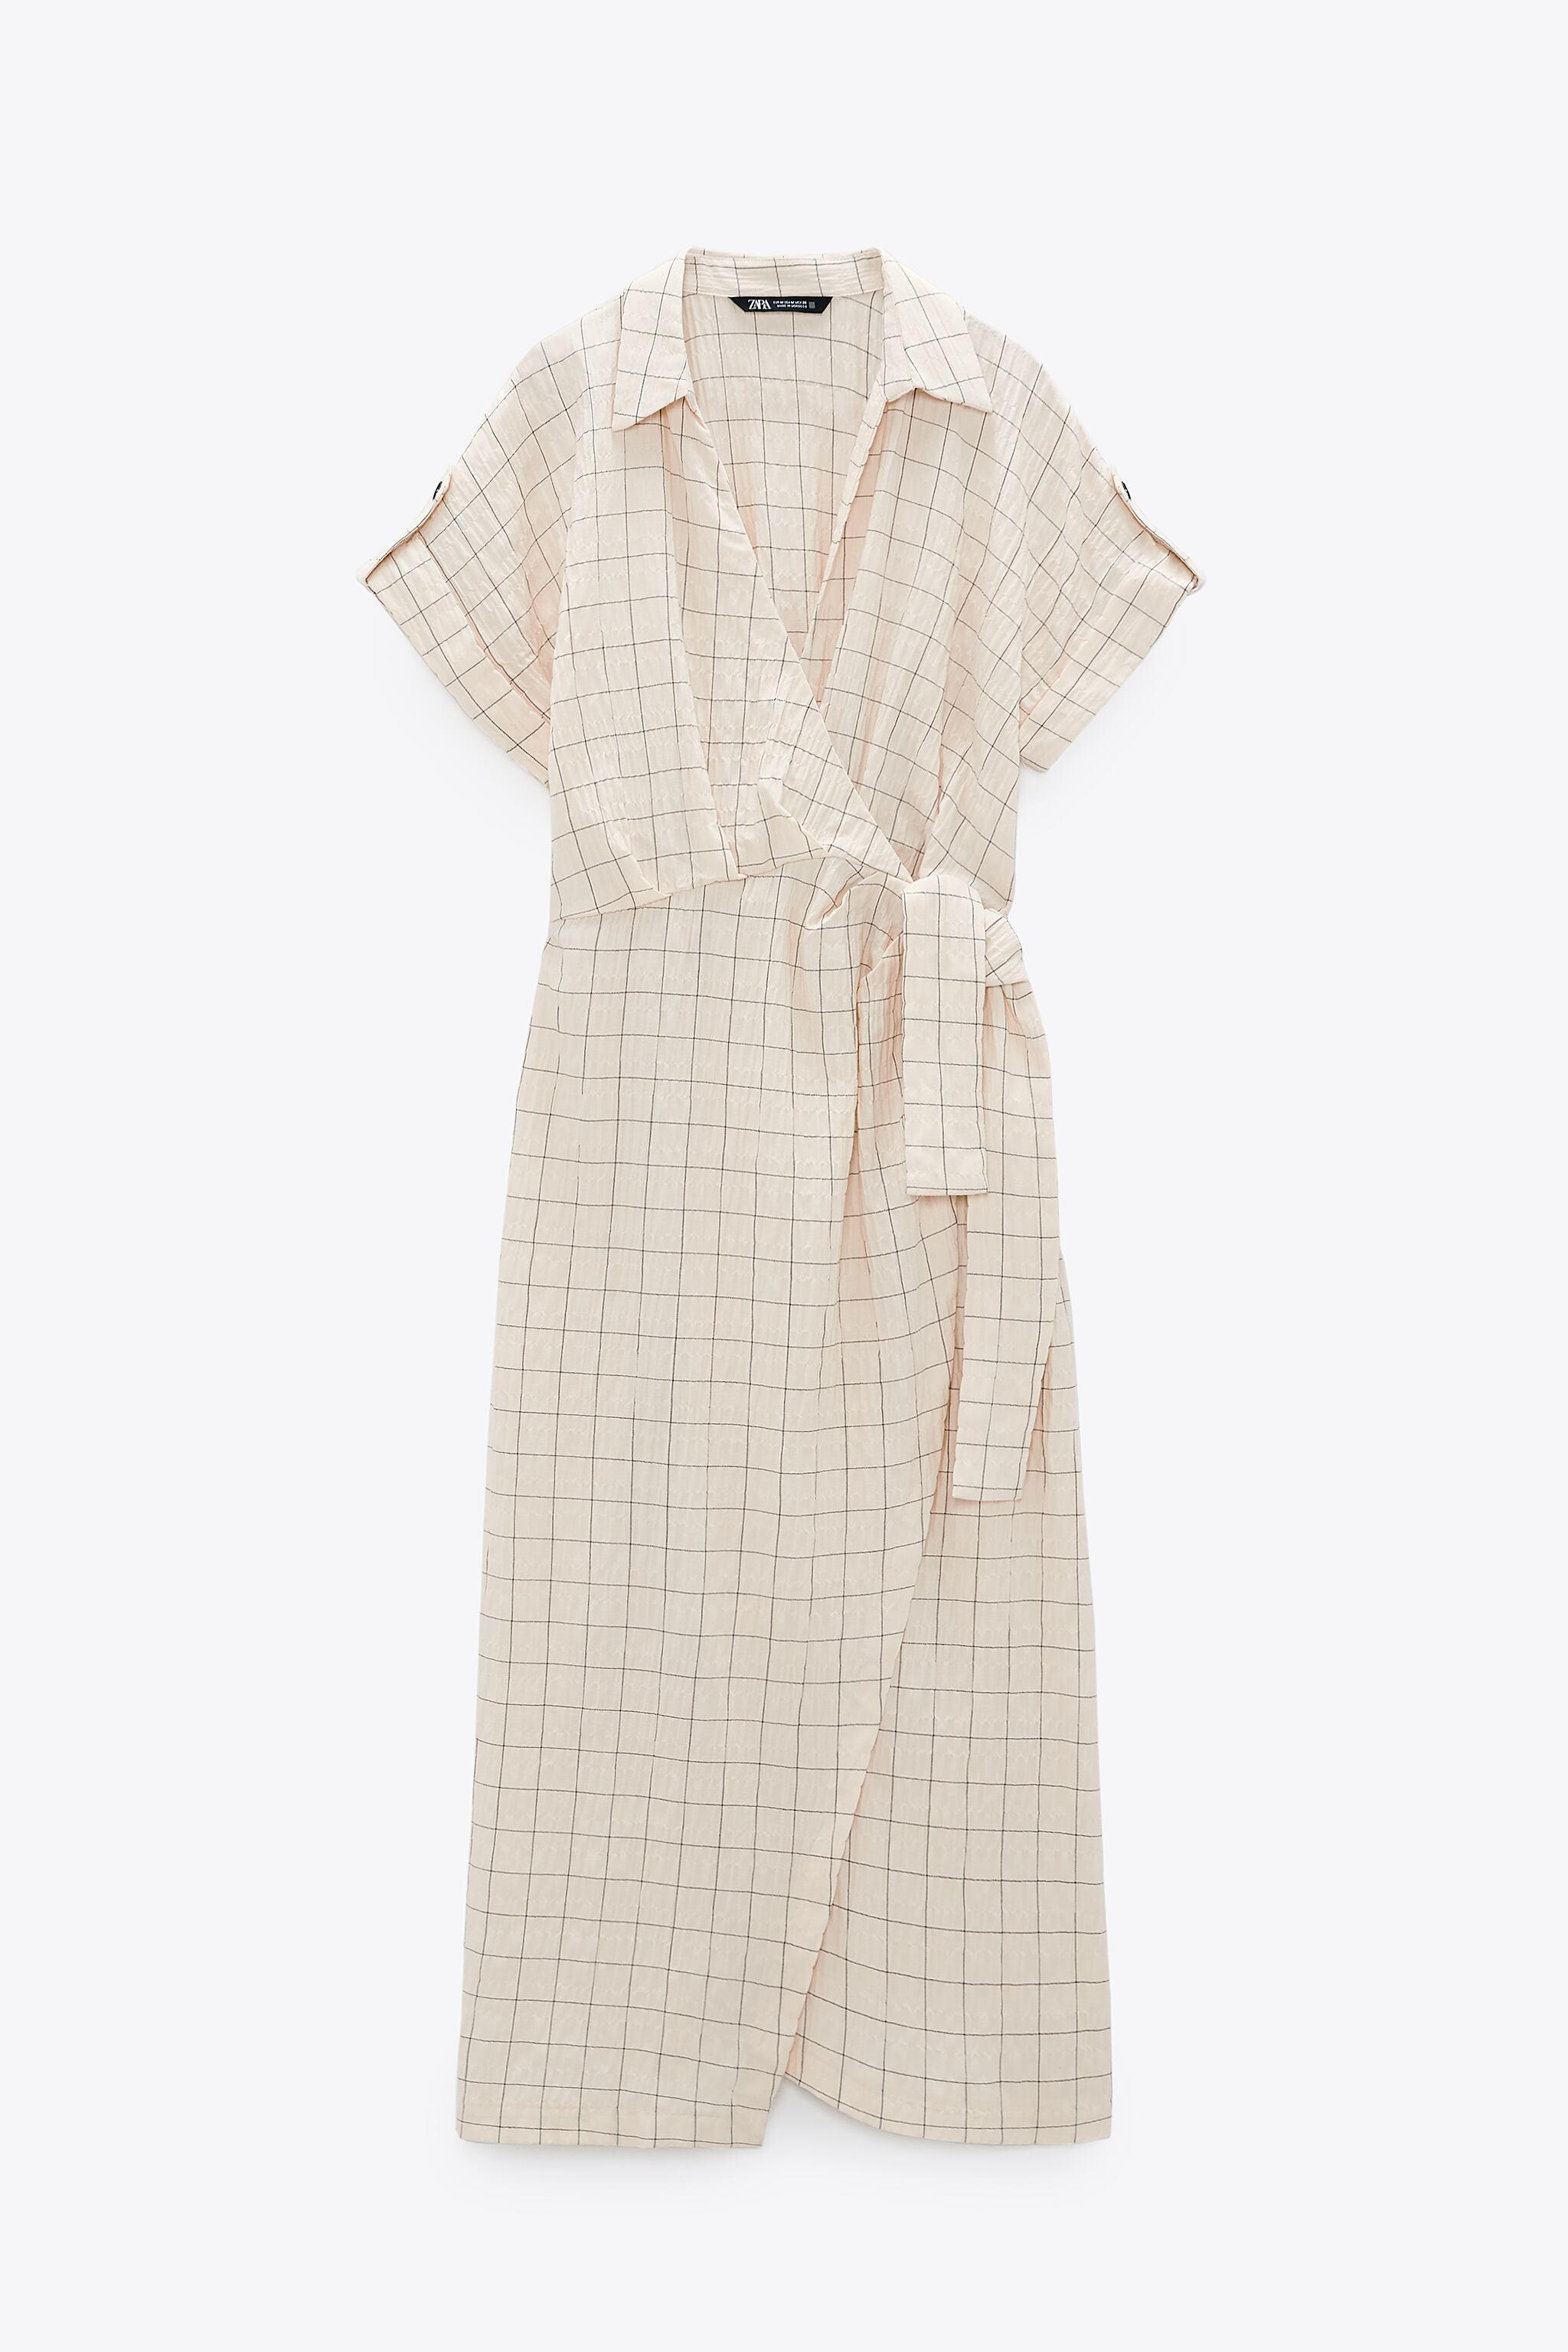 CHECKERED KNOTTED DRESS 1